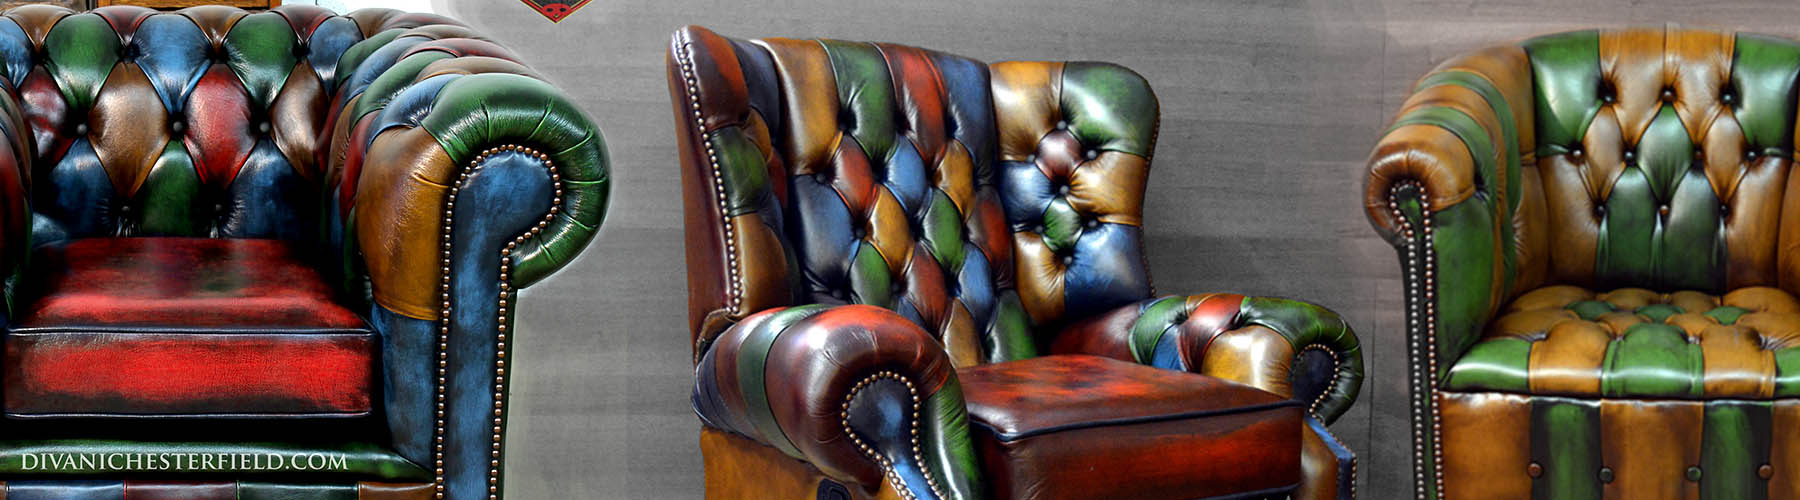 poltrone chesterfield pelle moderne colorate patchwork originali